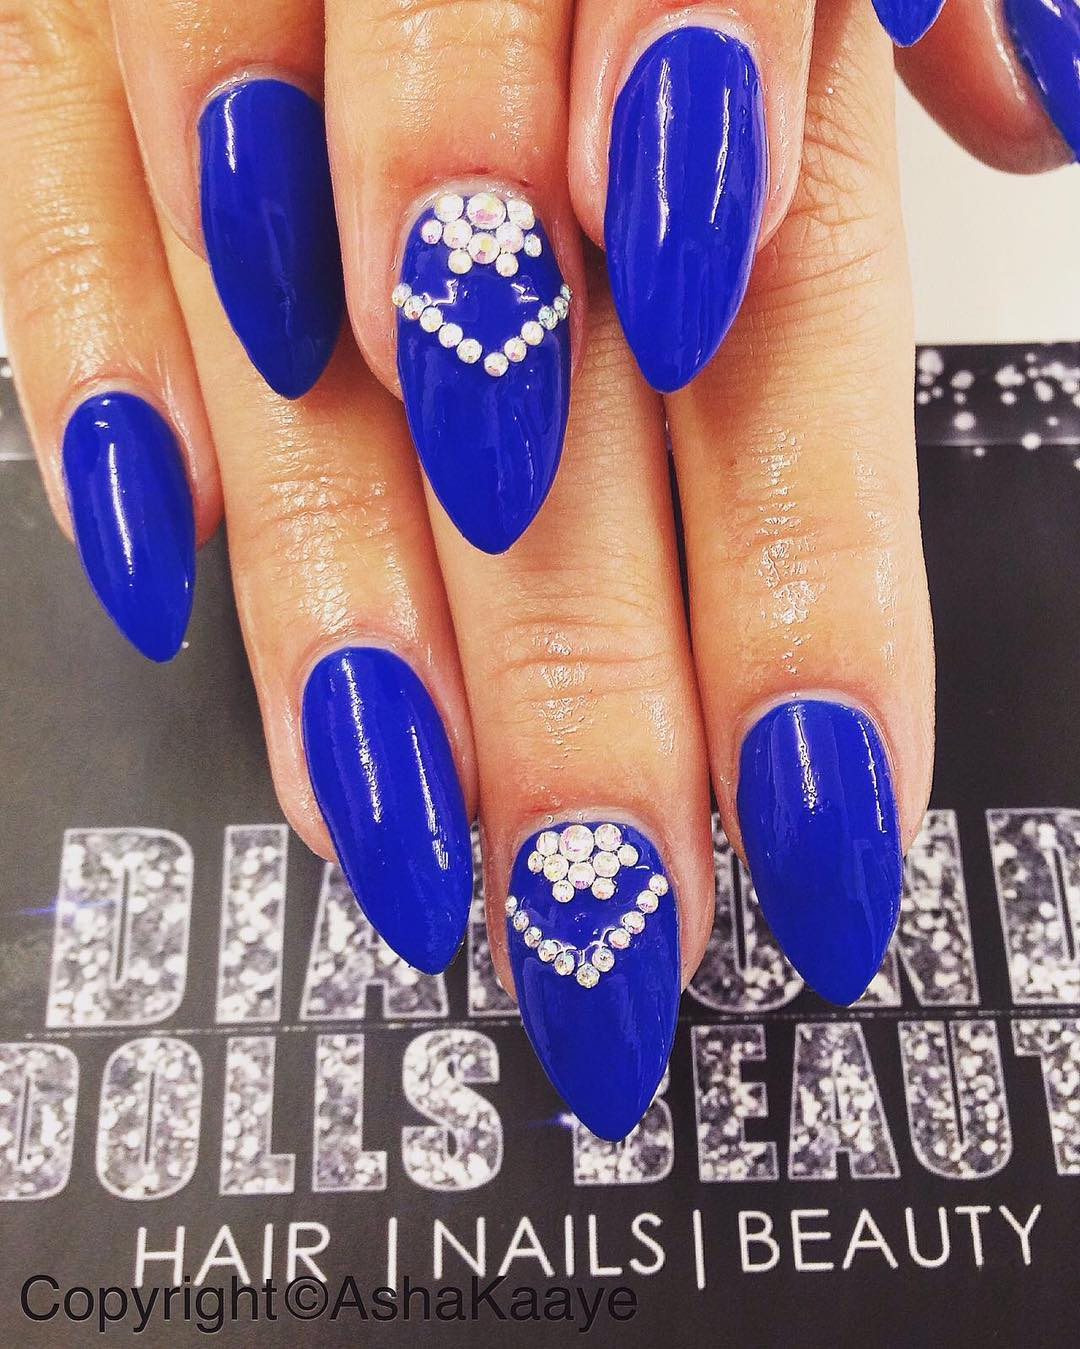 Royal Blue Nail Design - 30+ Colourful Acrylic Nail Art Designs , Ideas Design Trends